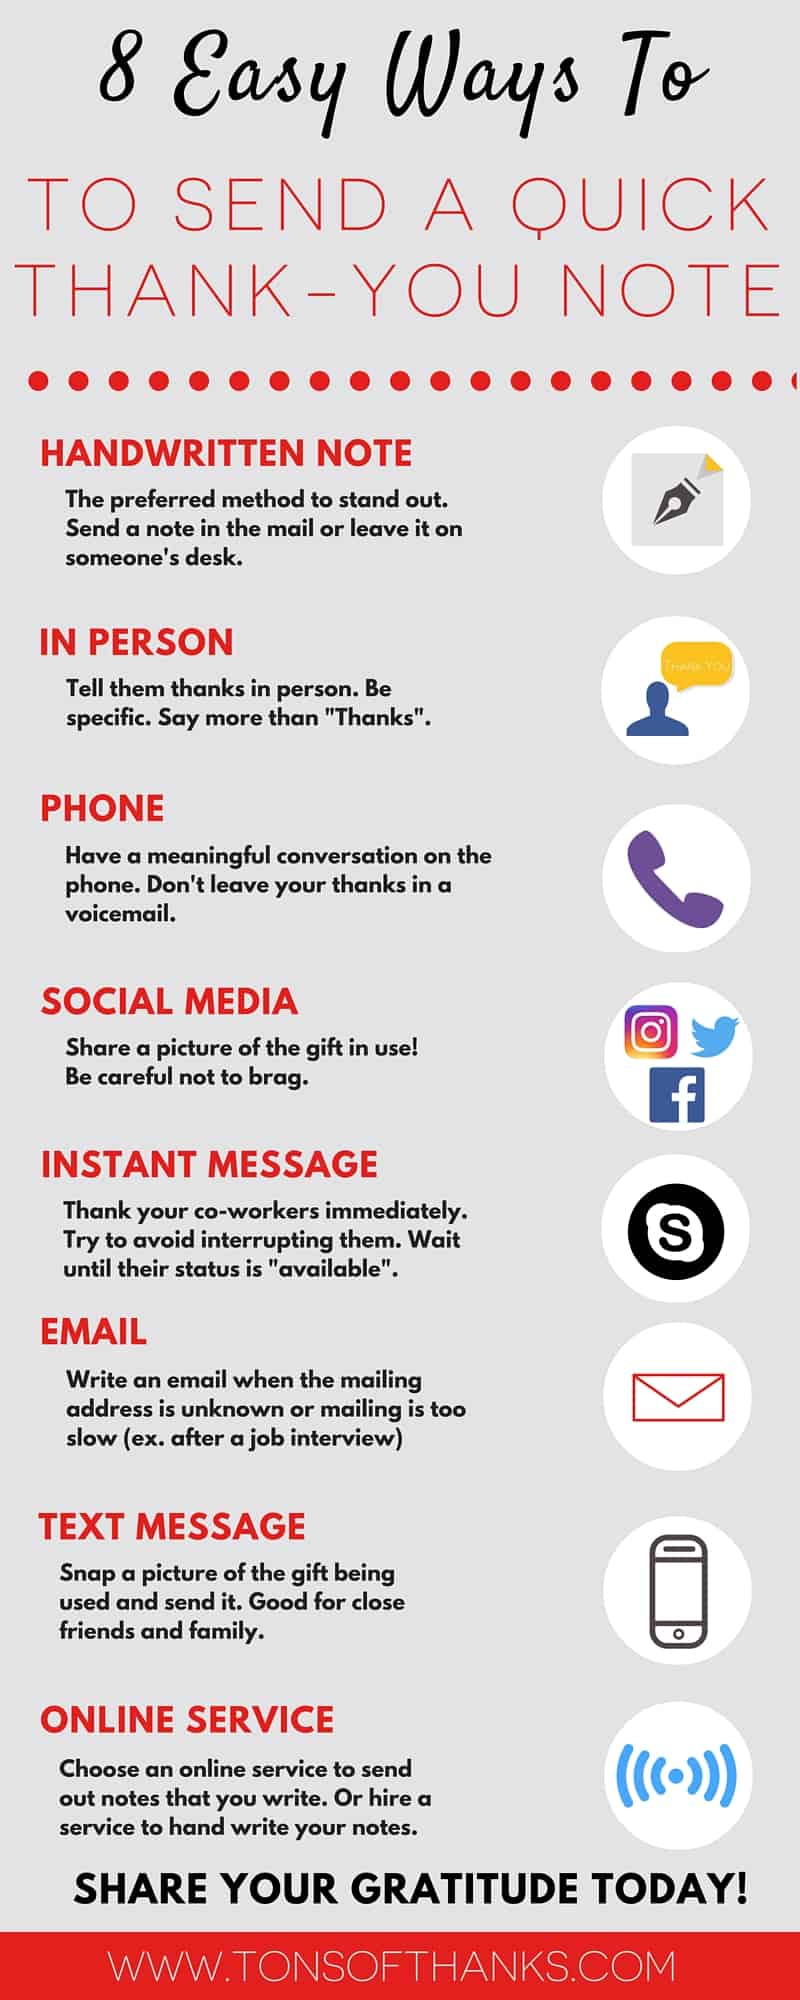 infographic 8 easy ways to send a quick thank you note